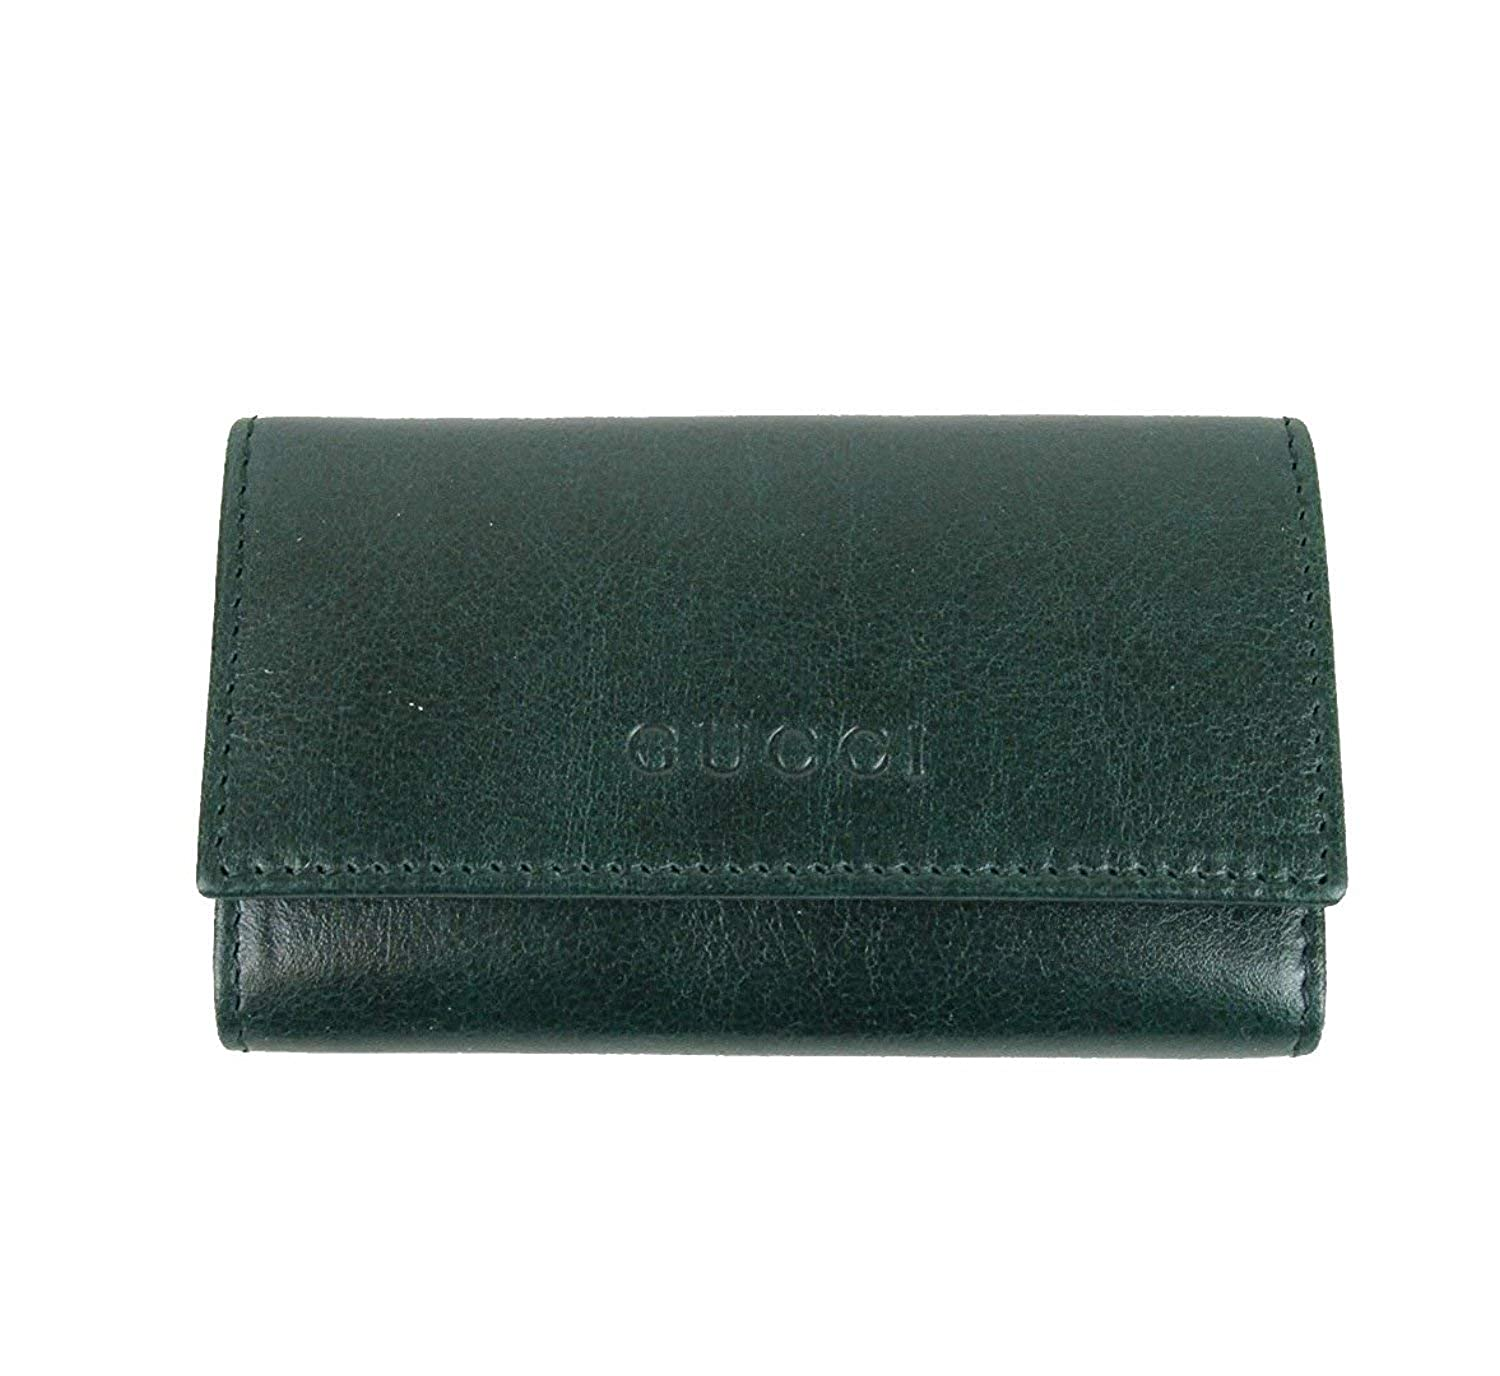 Gucci Unisex Leather Key Chain Holder 260989